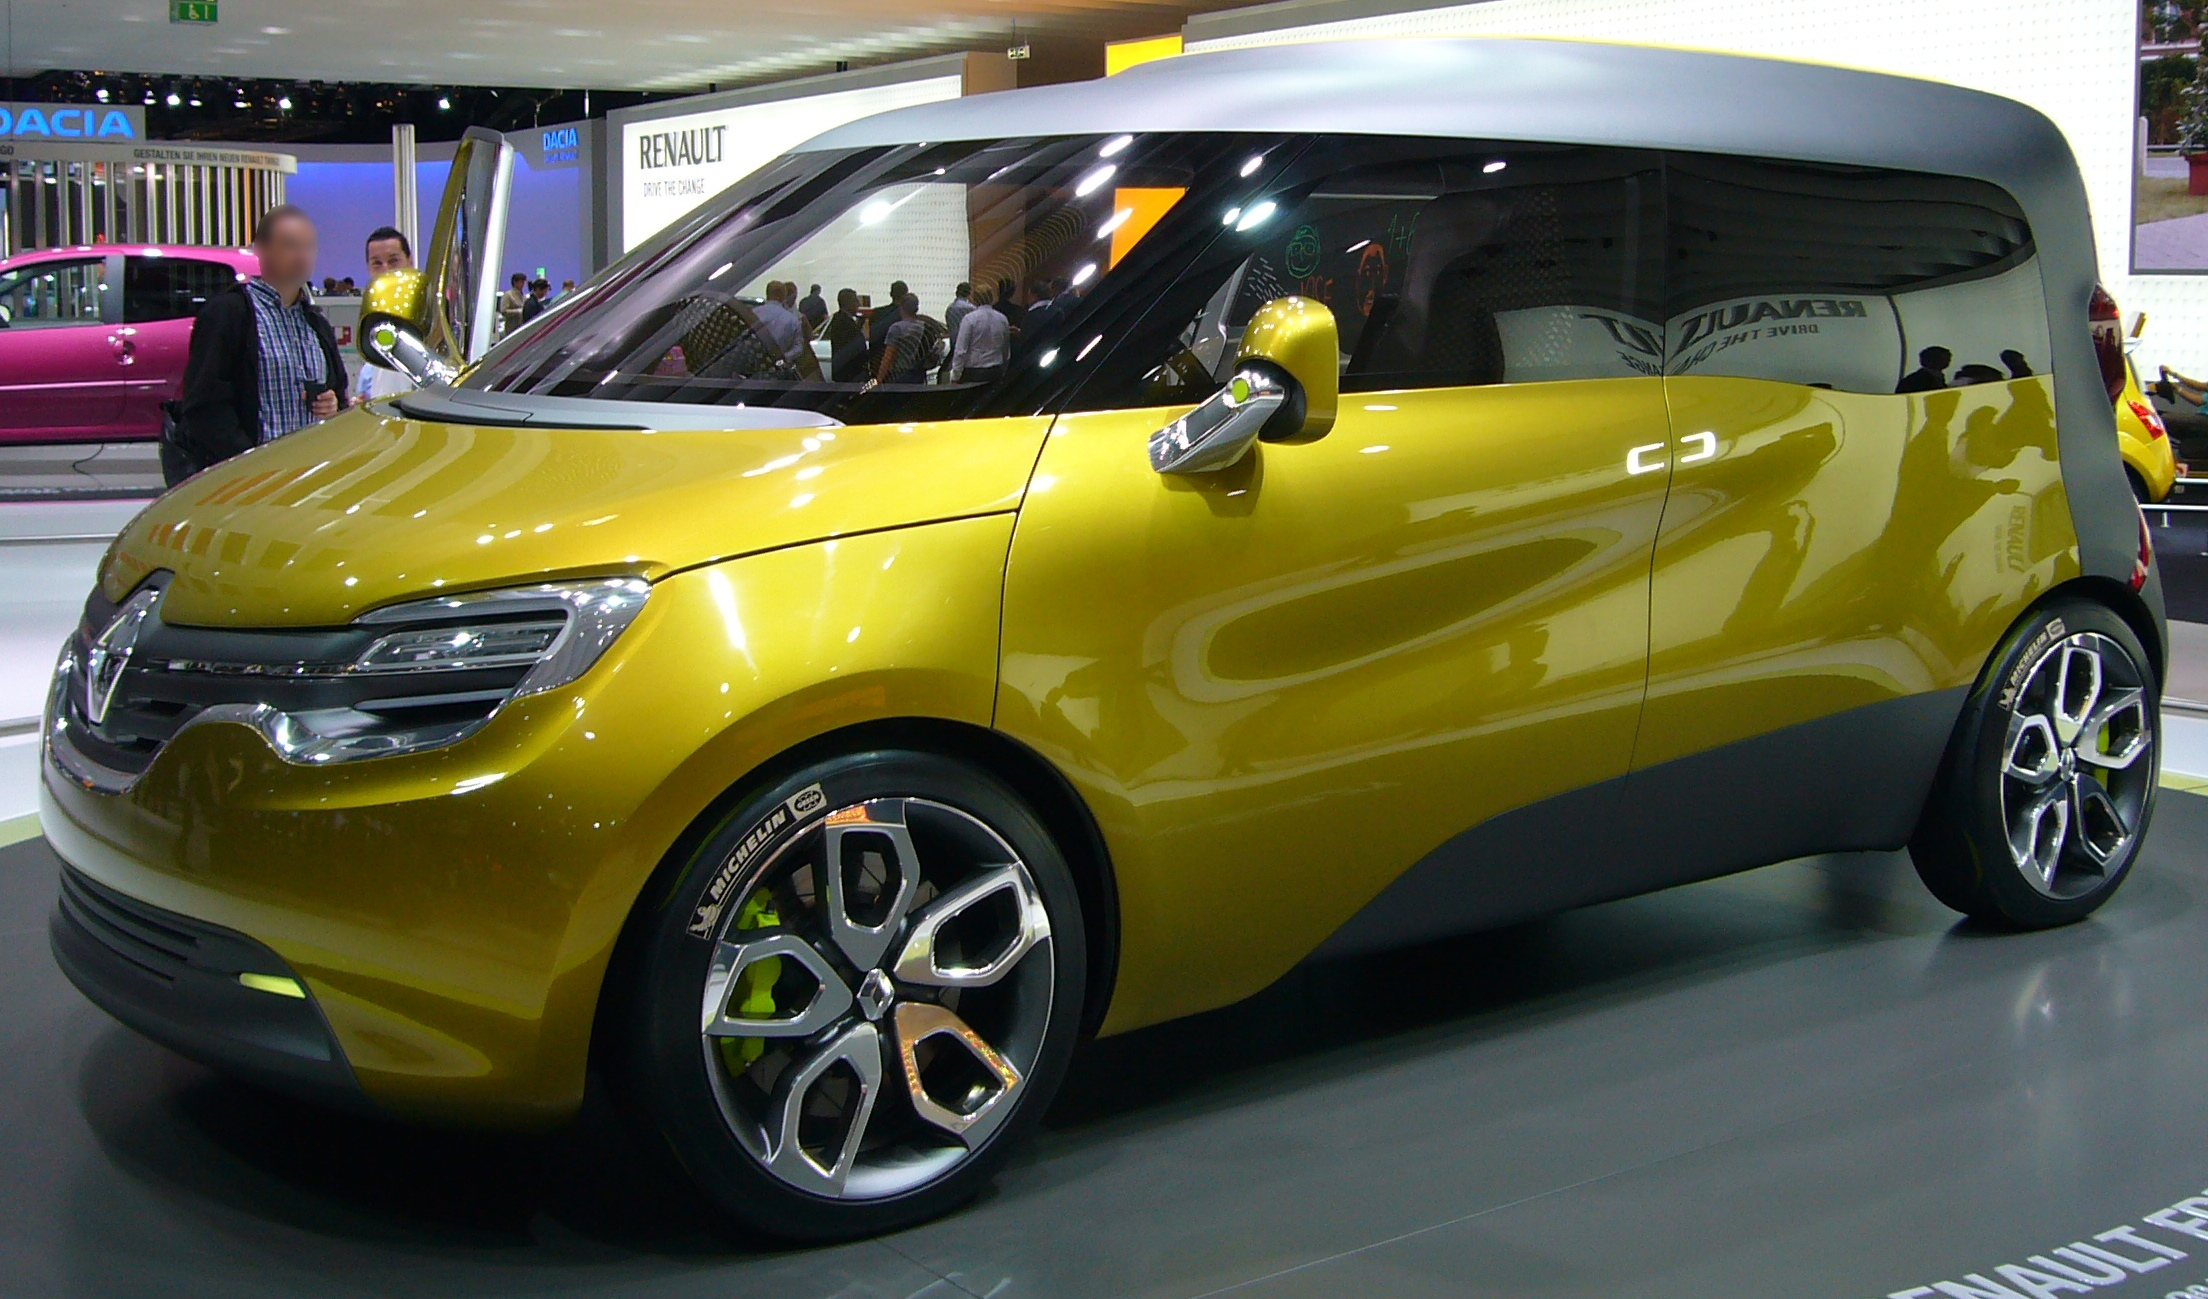 renault pictures #9